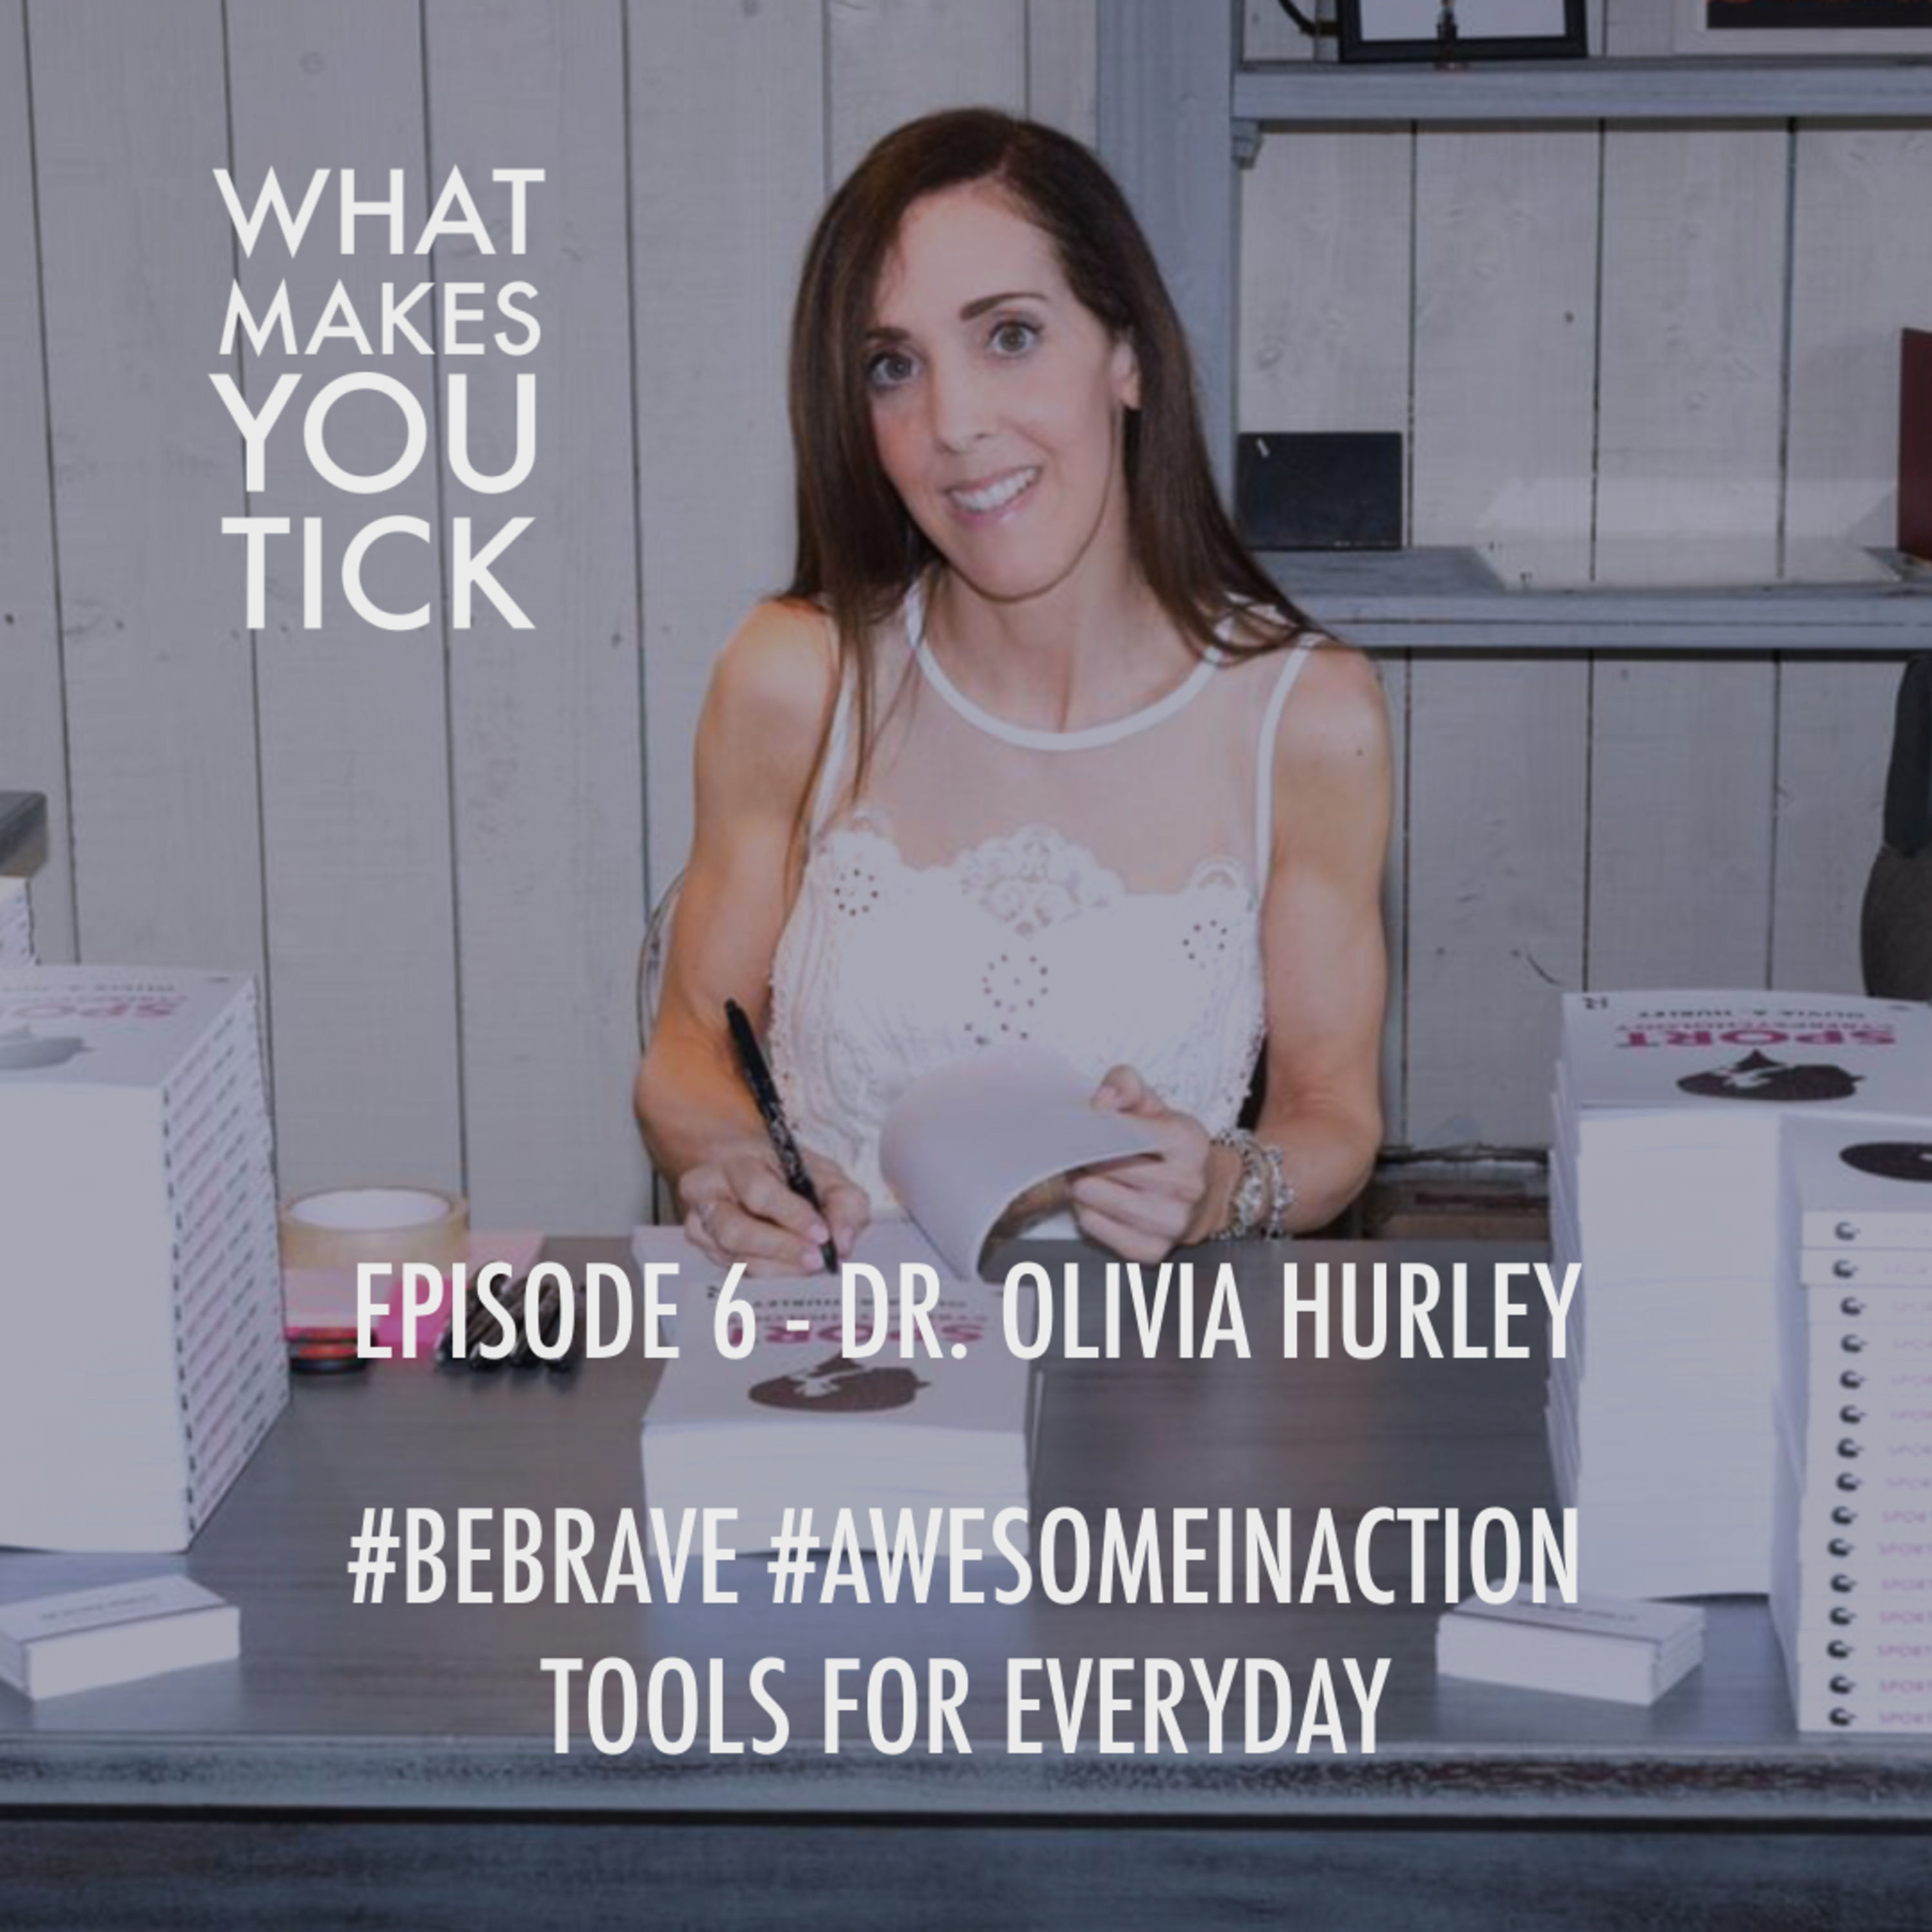 Episode 6 - #bebrave #awsesomeinaction Tools for everyday